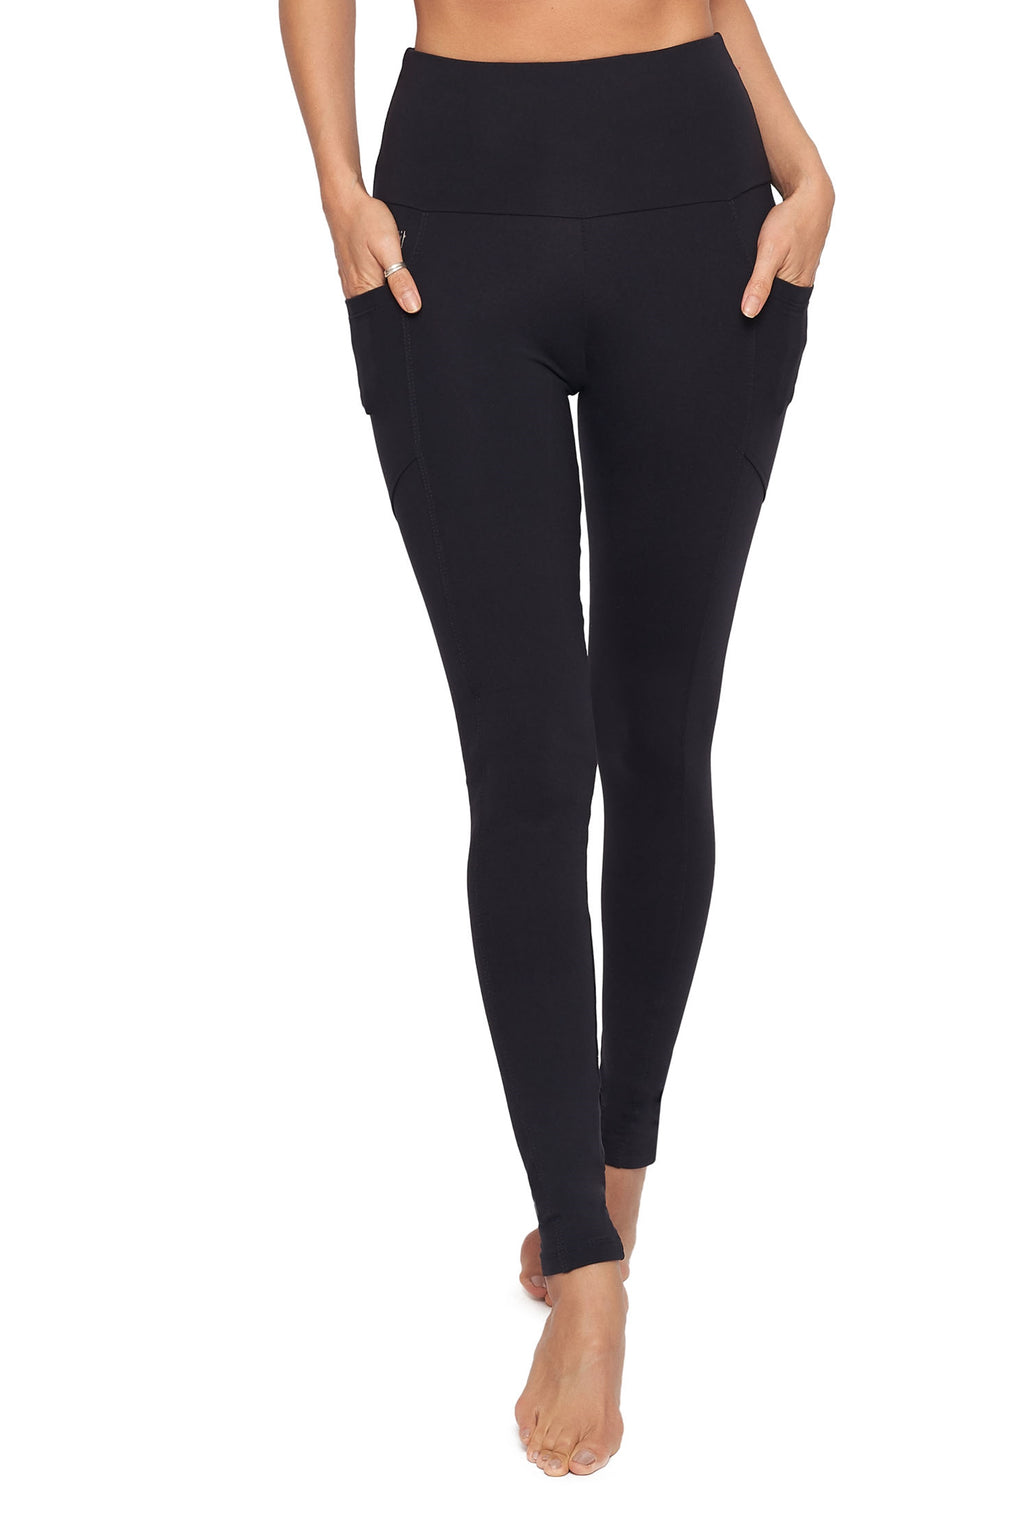 High-Waisted Supplex Full Length Legging with Pockets